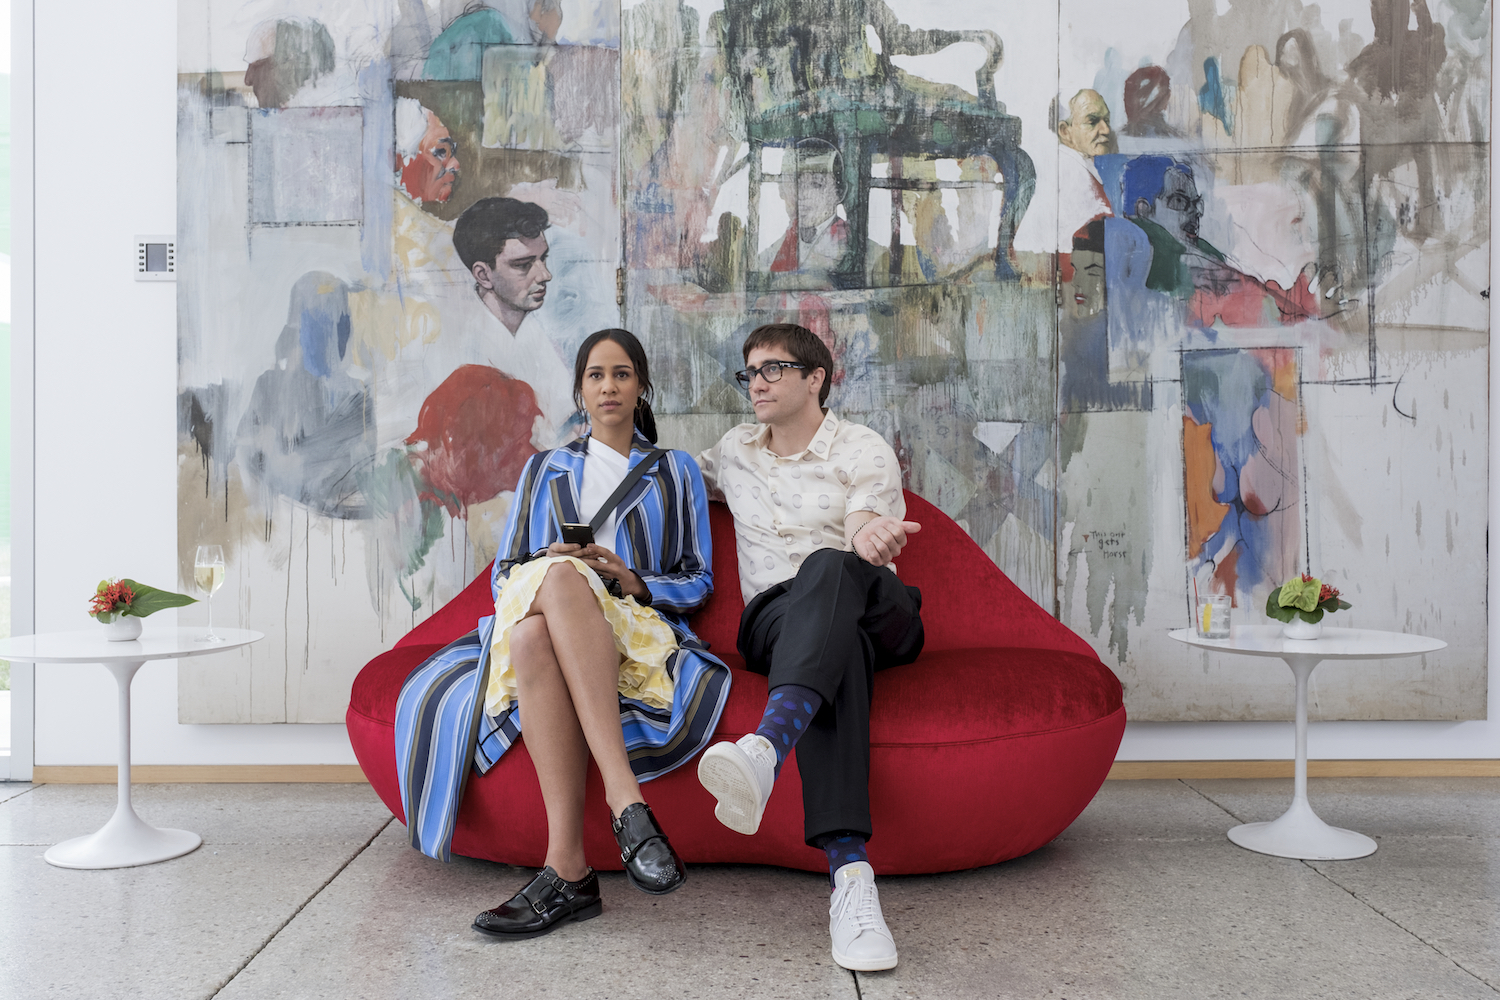 Velvet Buzzsaw, 2019. Still. Now showing on Netflix UK